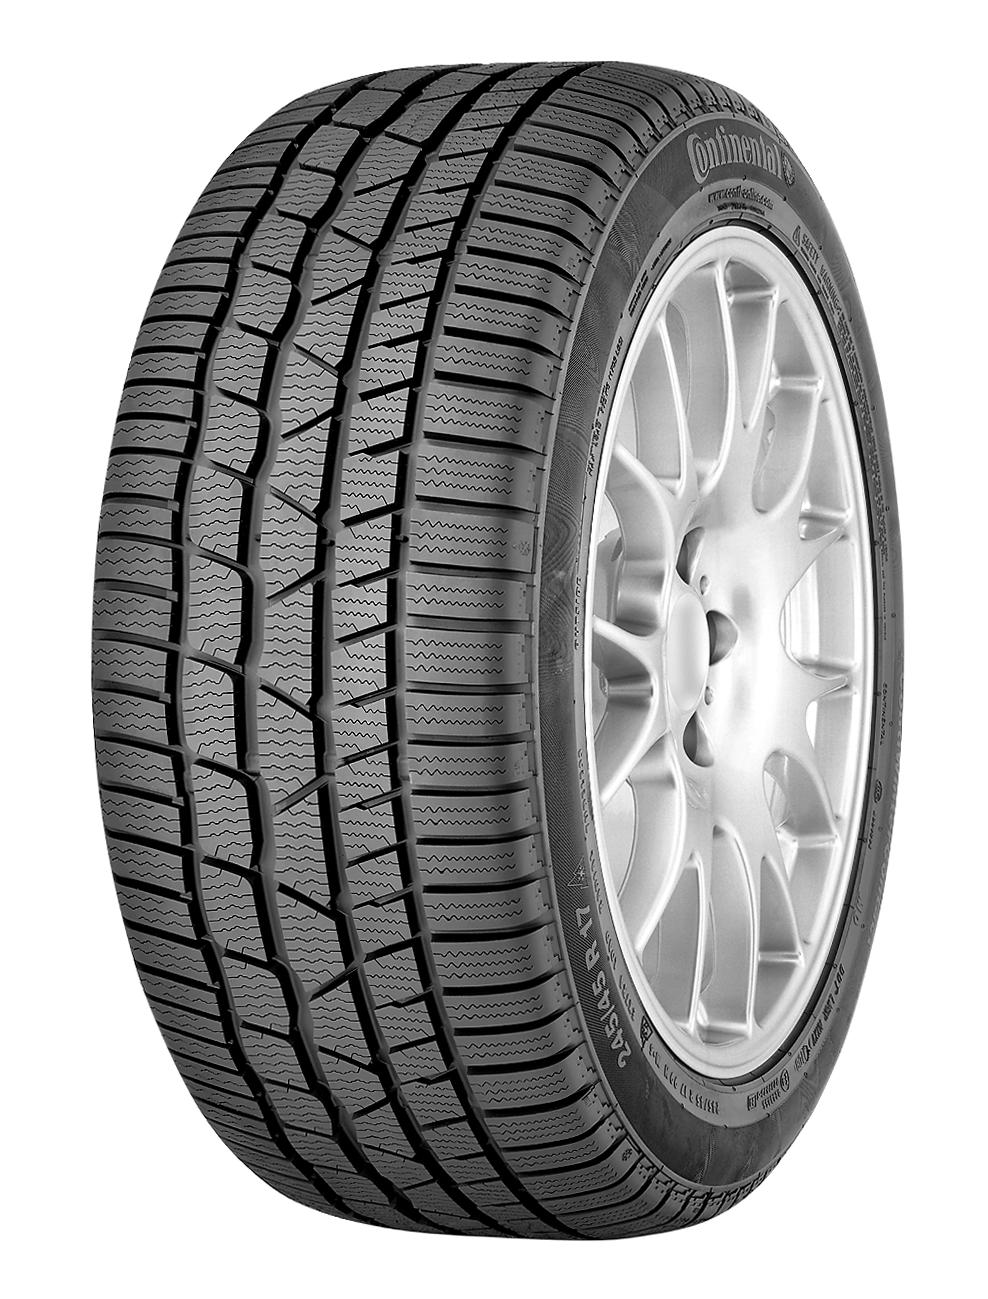 Anvelopa iarna CONTINENTAL CONTIWINTERCONTACT TS 830 P 205/55 R16 91H